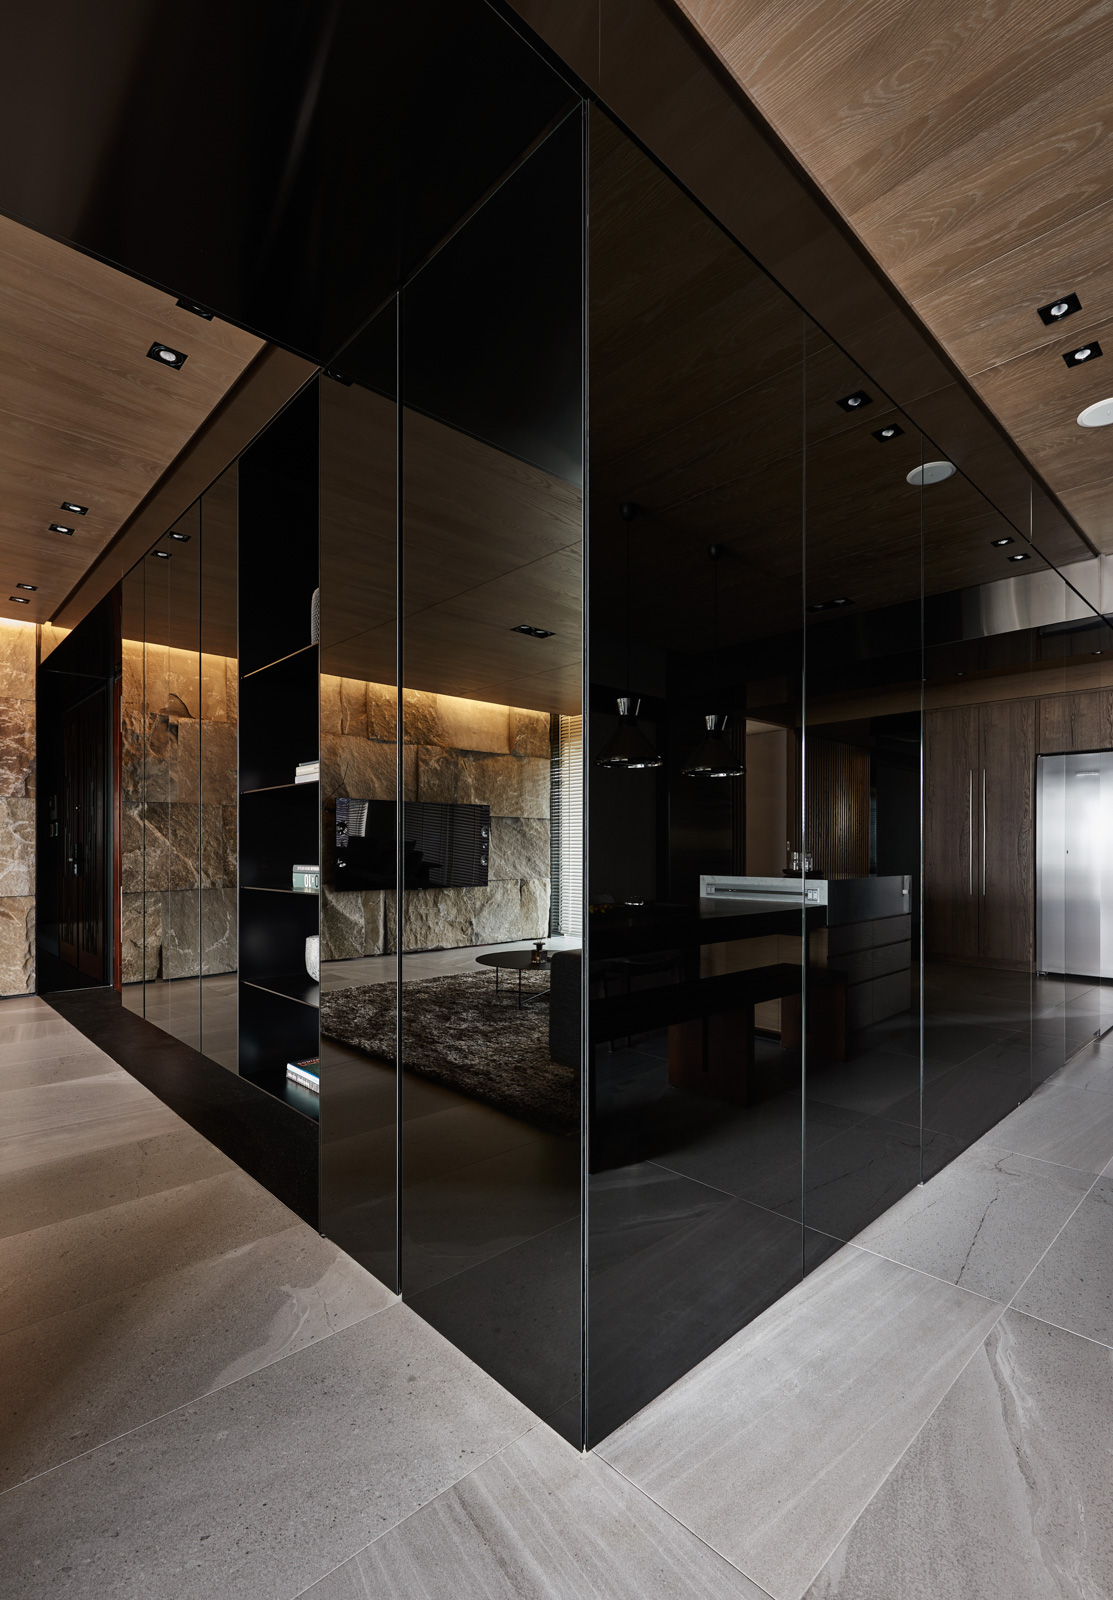 Black Acrylic Glass And Stone Form This Dark And